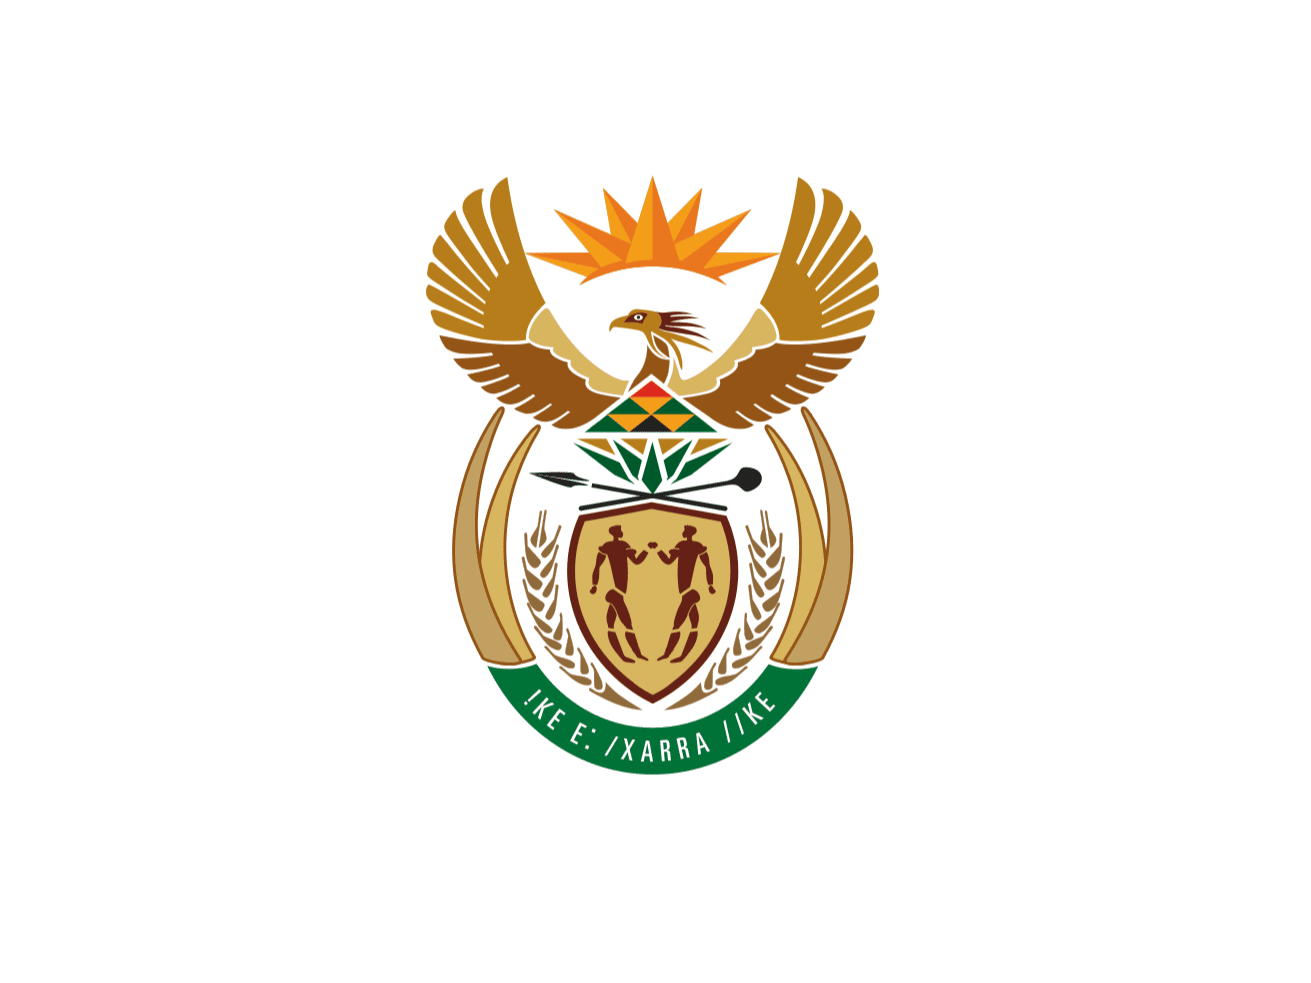 The Design and Symbolism of South Africa's Coat of Arms